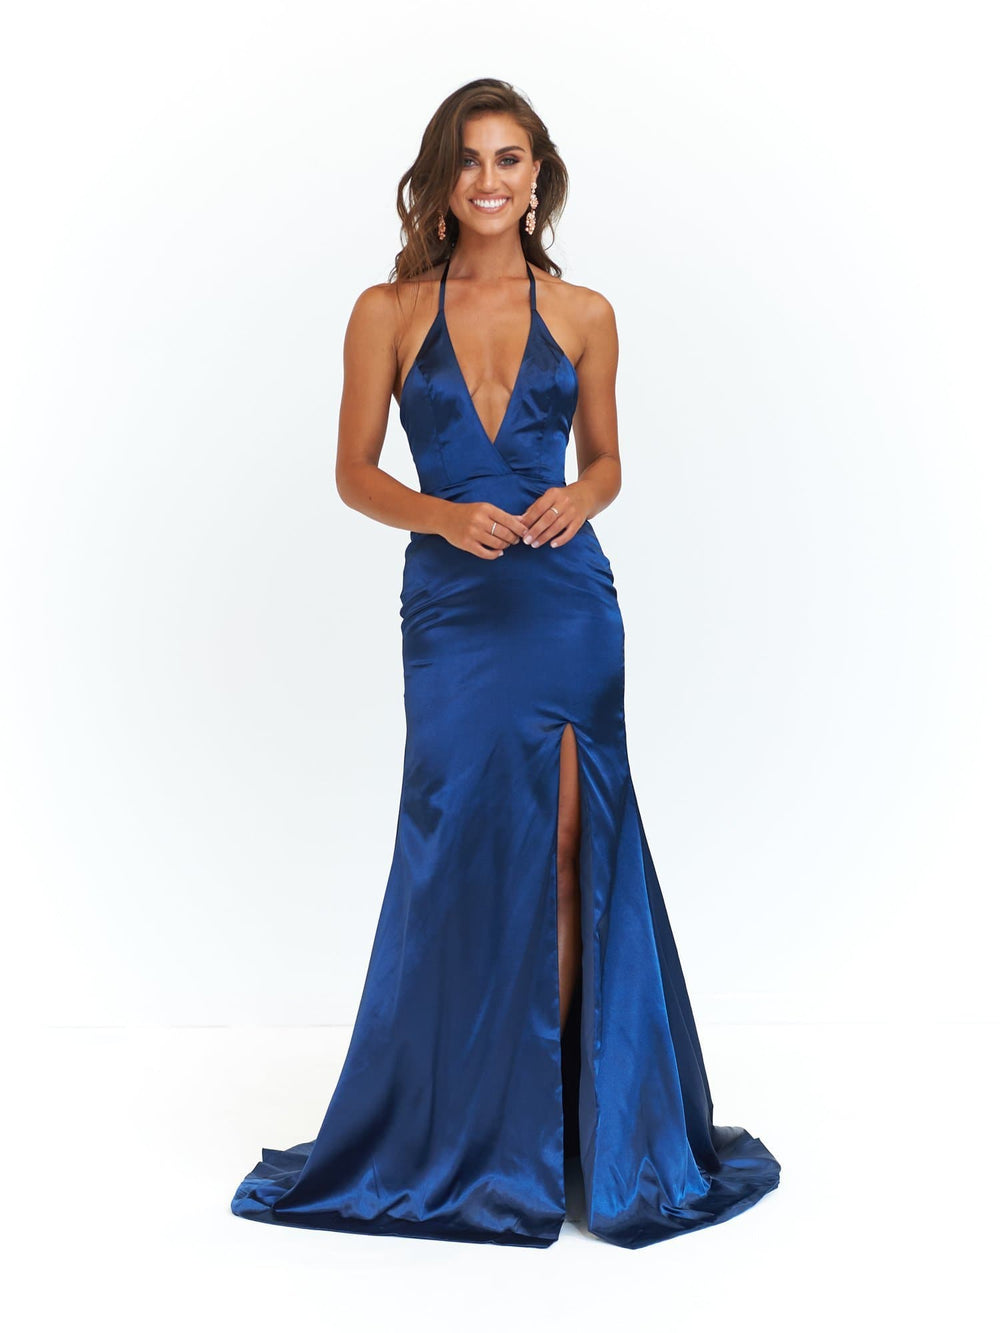 09852f2c27 A N Alyssa - Navy Satin Formal Gown with V Neck and Low Back – A N ...